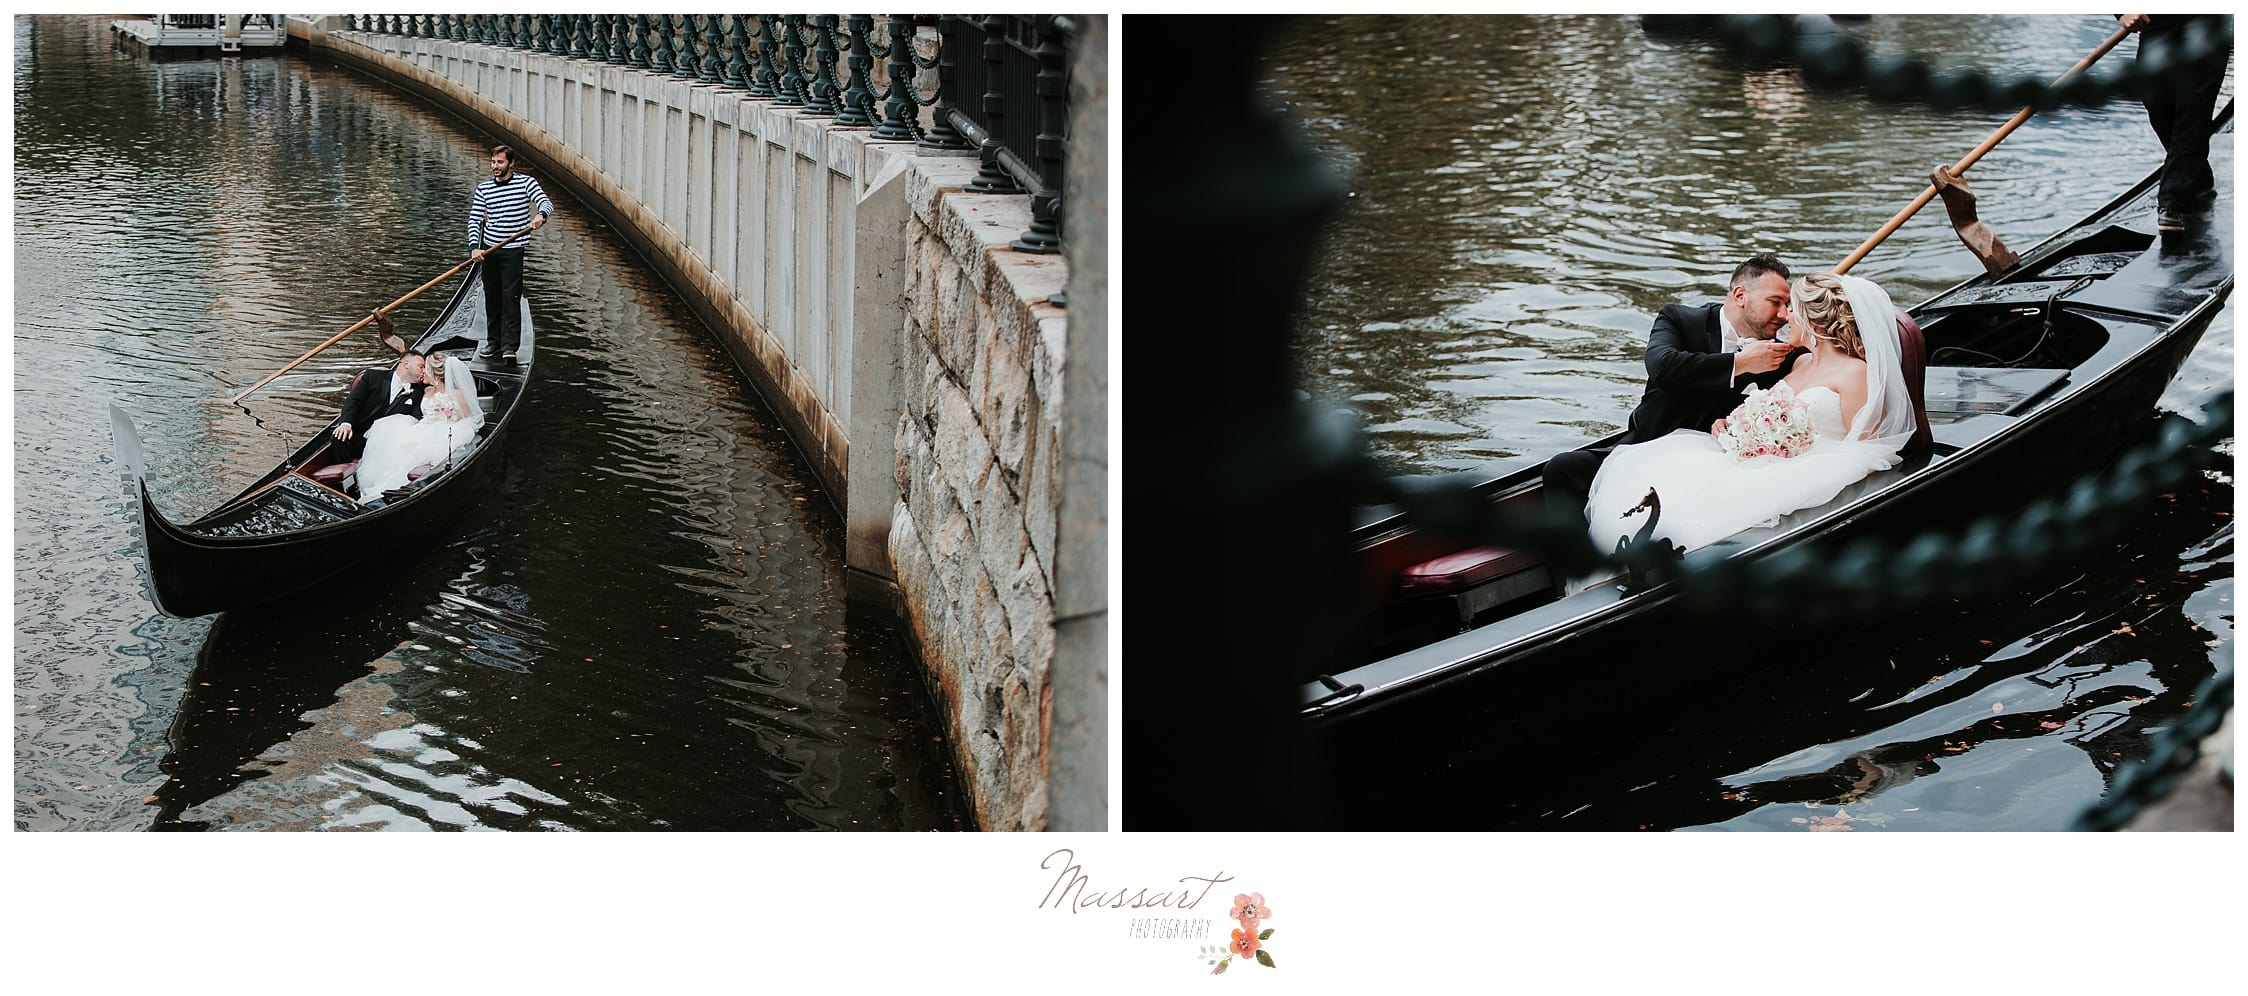 Overhead shot of the bride and groom on their gondola ride photographed by Massart Photography RI